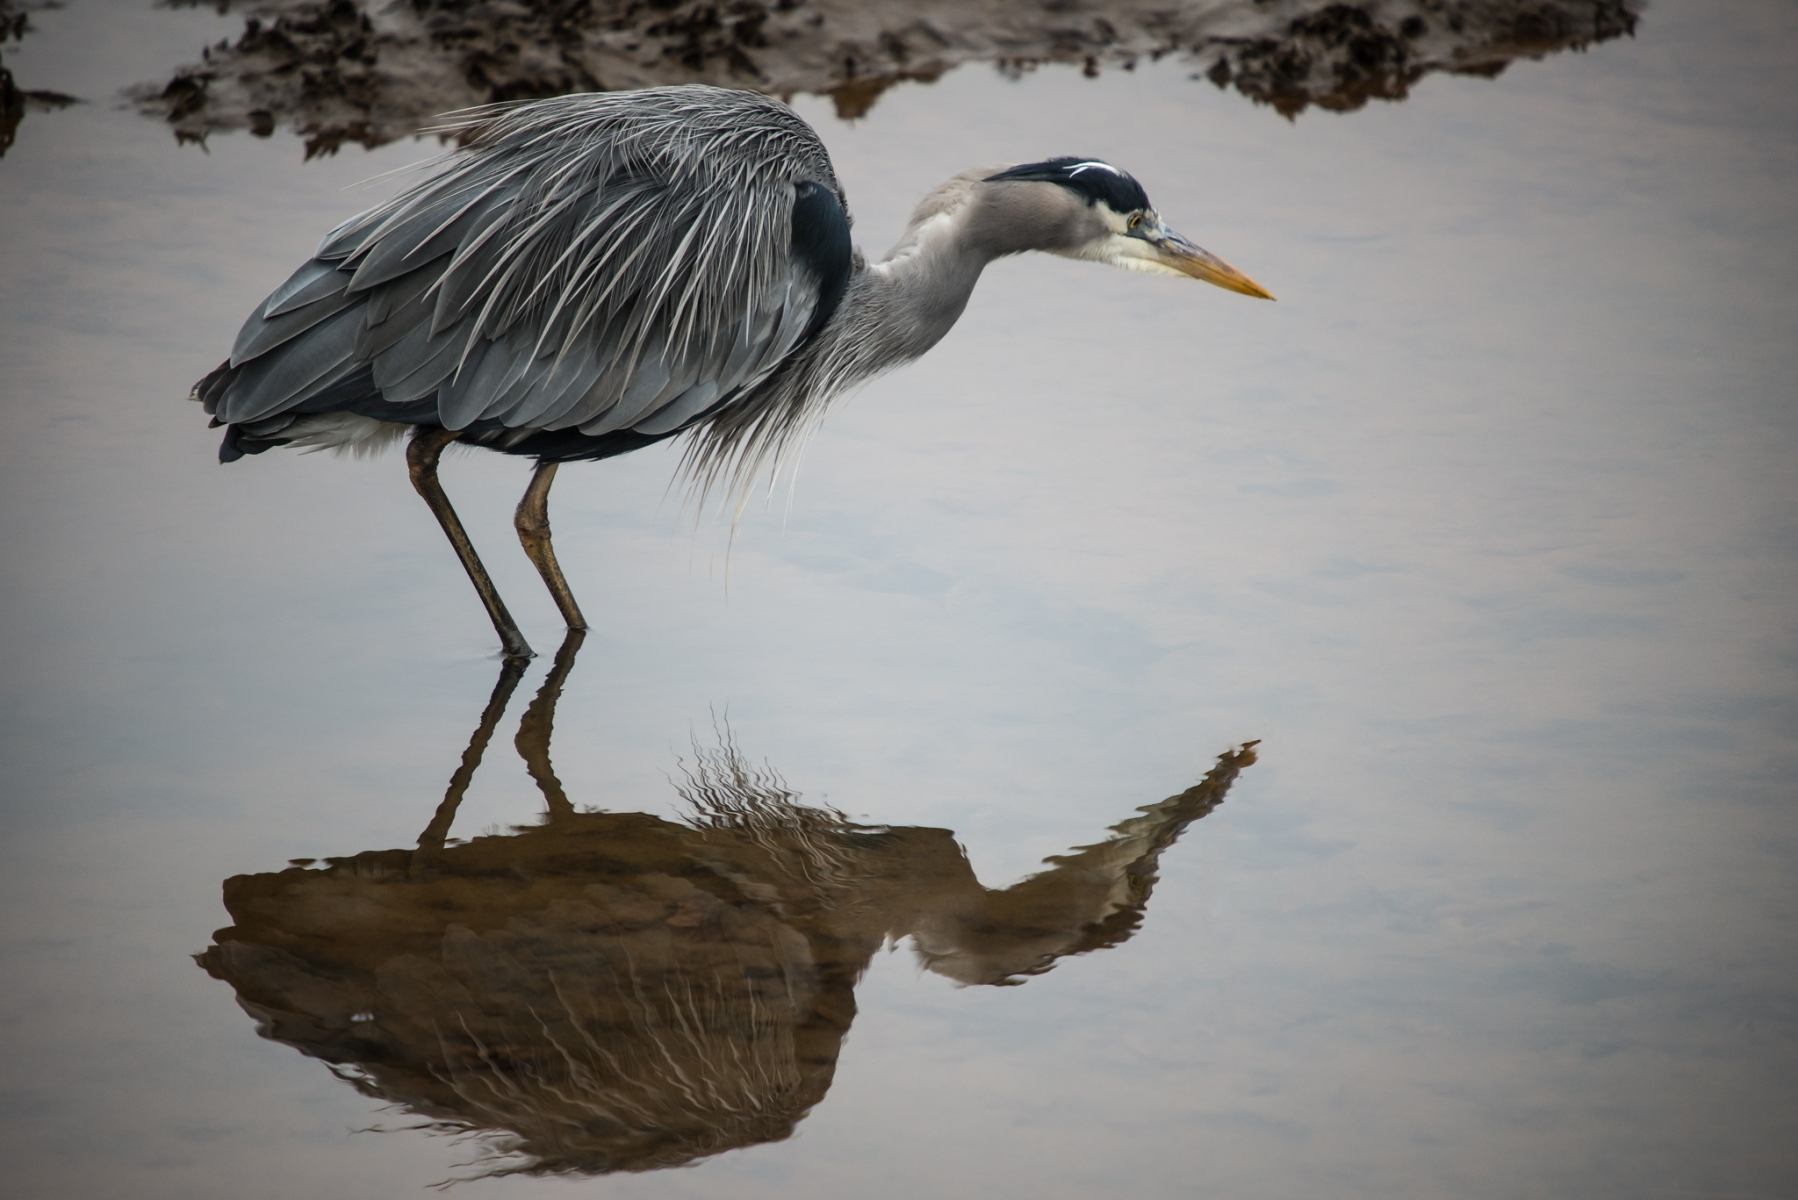 Reflection of a Heron